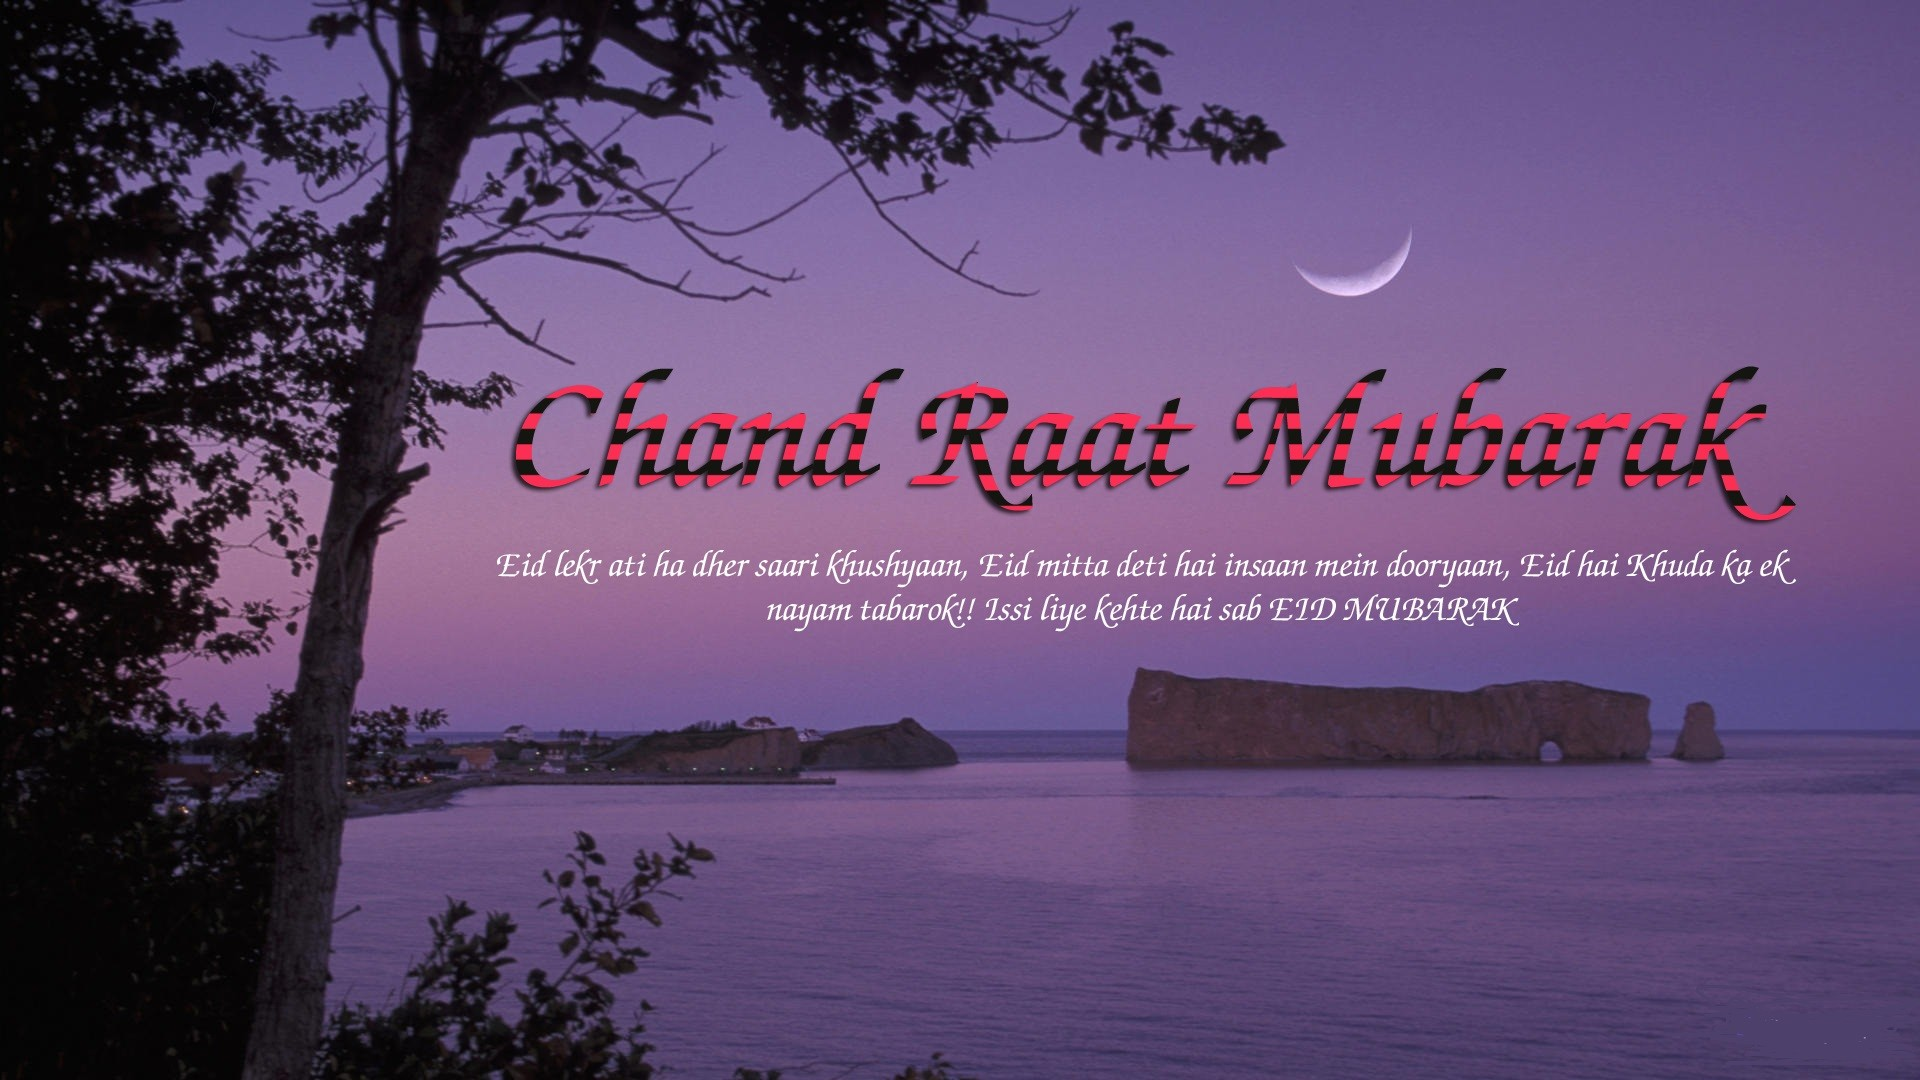 Res: 1920x1080, chand-raat-wallpapers-free-hd